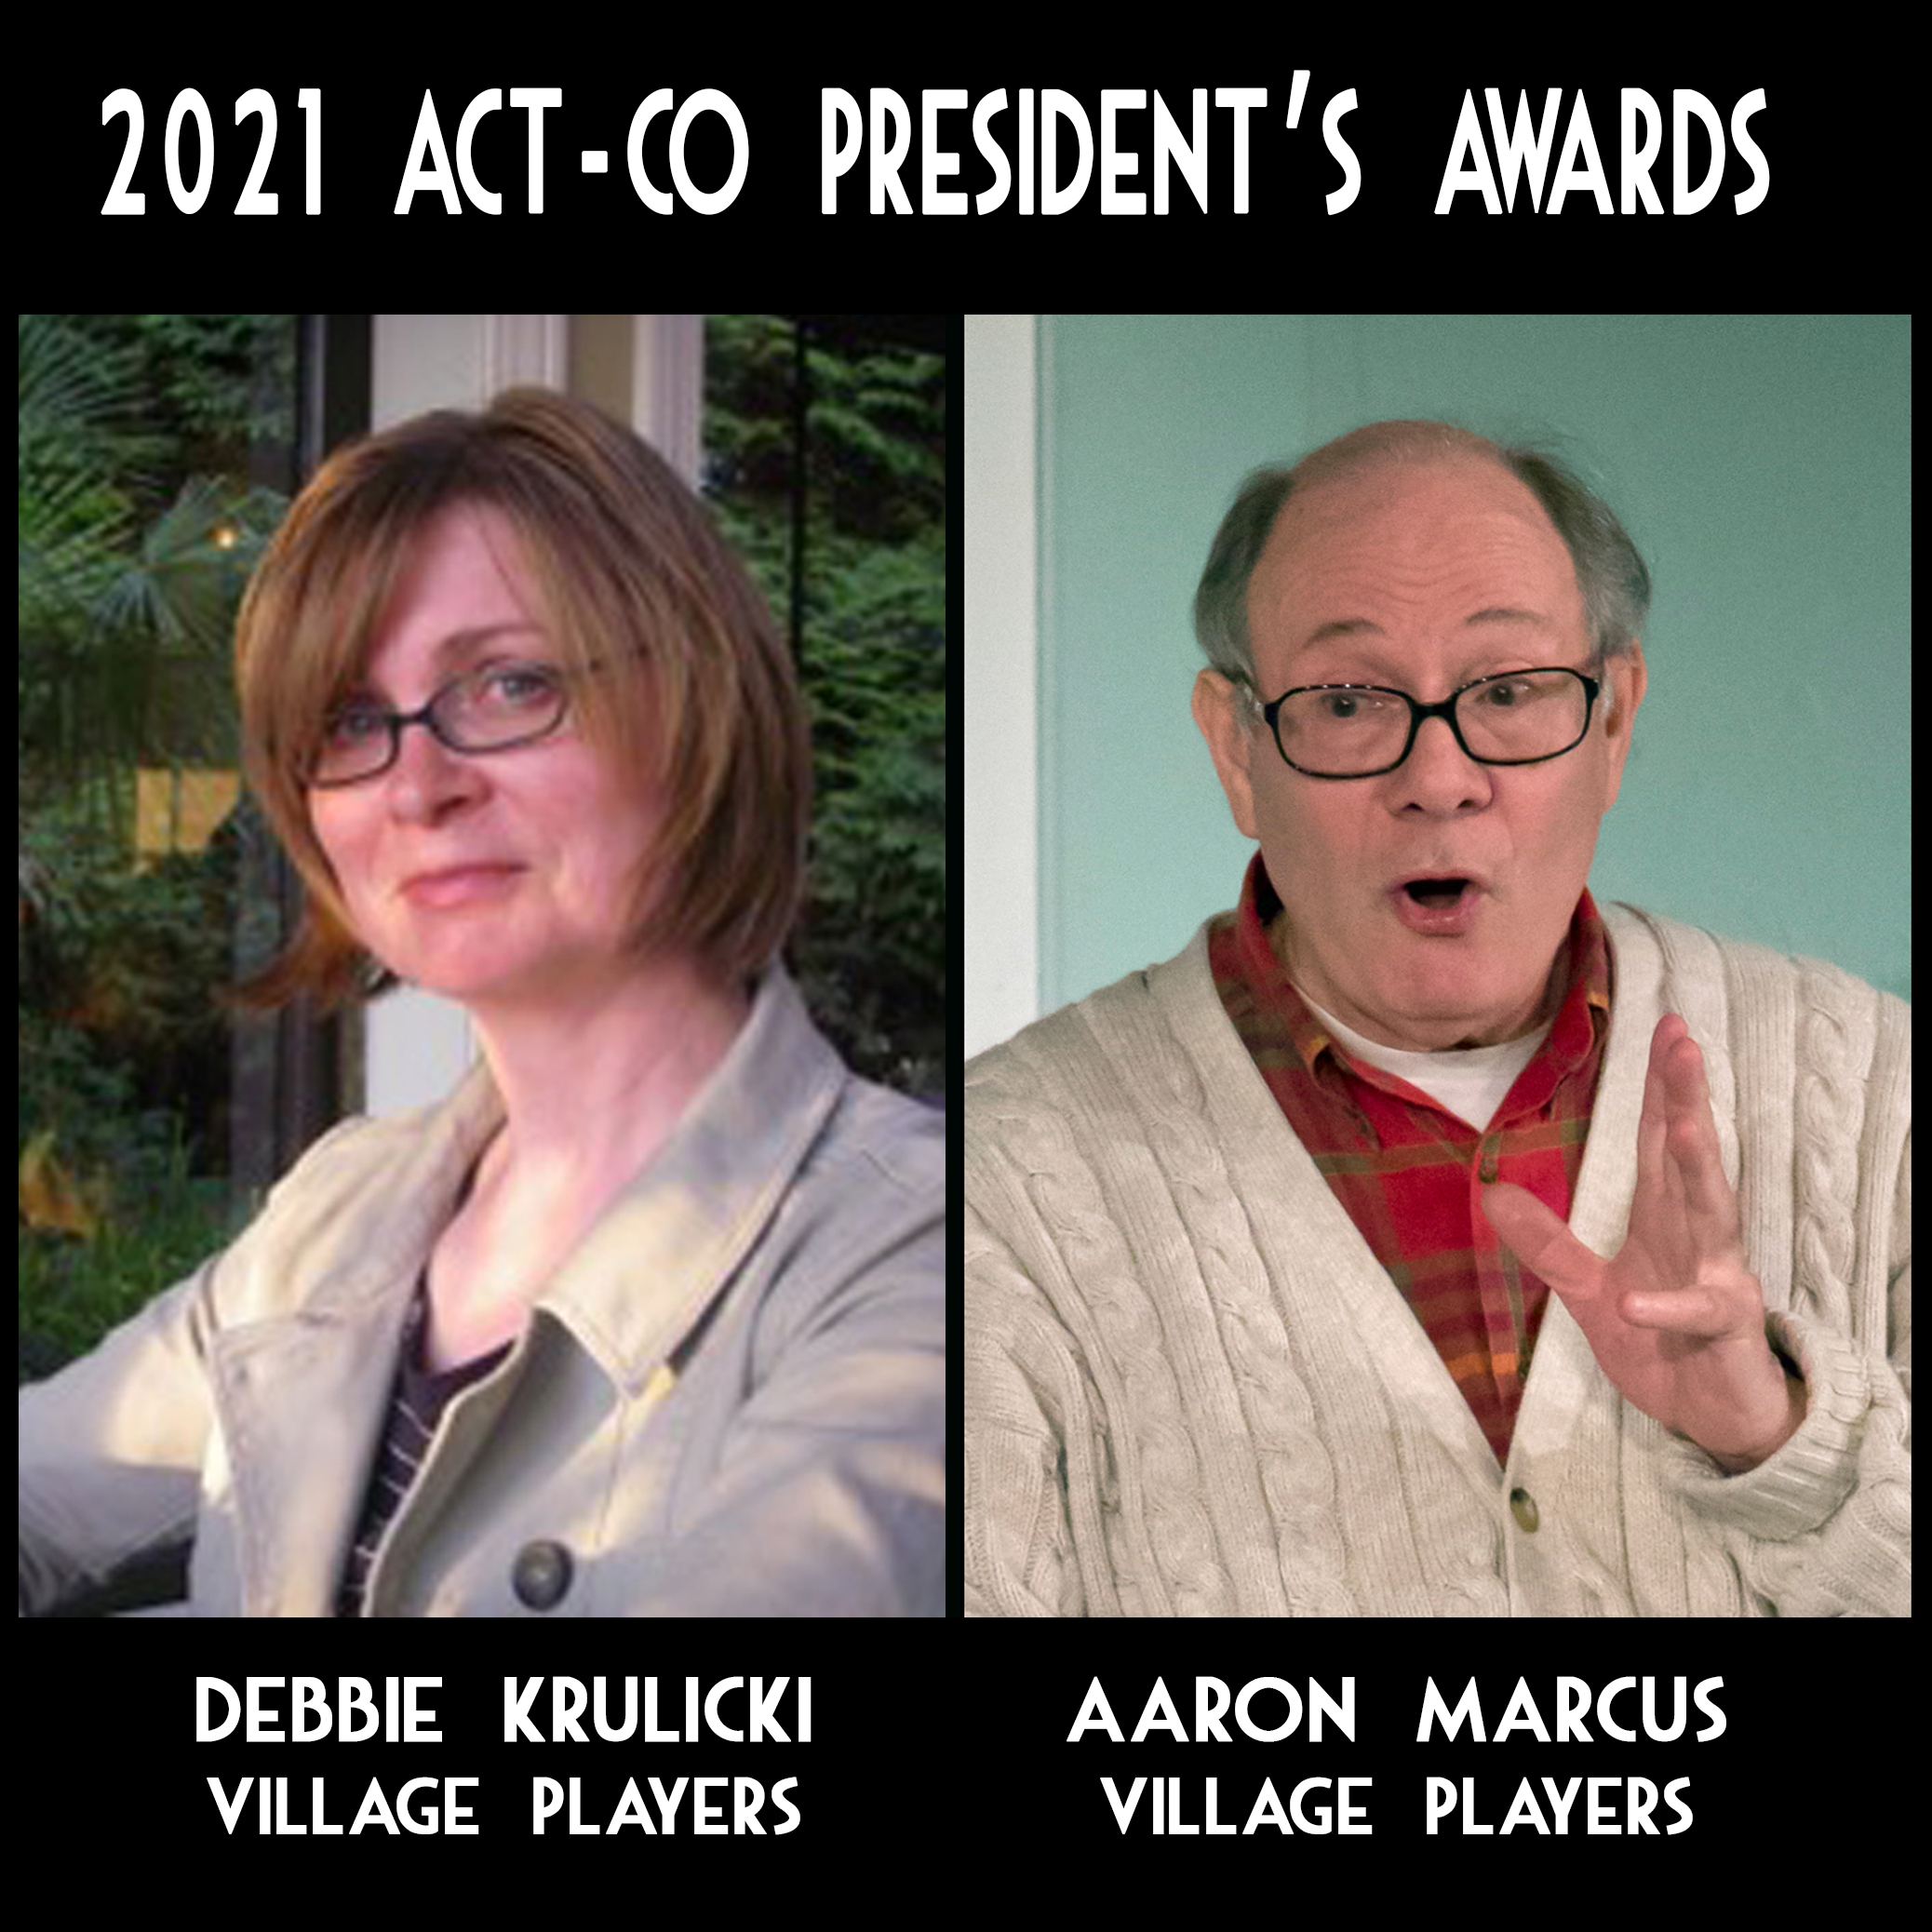 """""""Village Players"""" """"Bloor West Village Players"""" """"Village Playhouse"""" """"Runnymede theatre"""" theatre theater """"community theatre"""" """"Debbie Krulicki"""" """"Aaron Marcus"""" ACT-CO """"ACT-CO President's Award"""""""